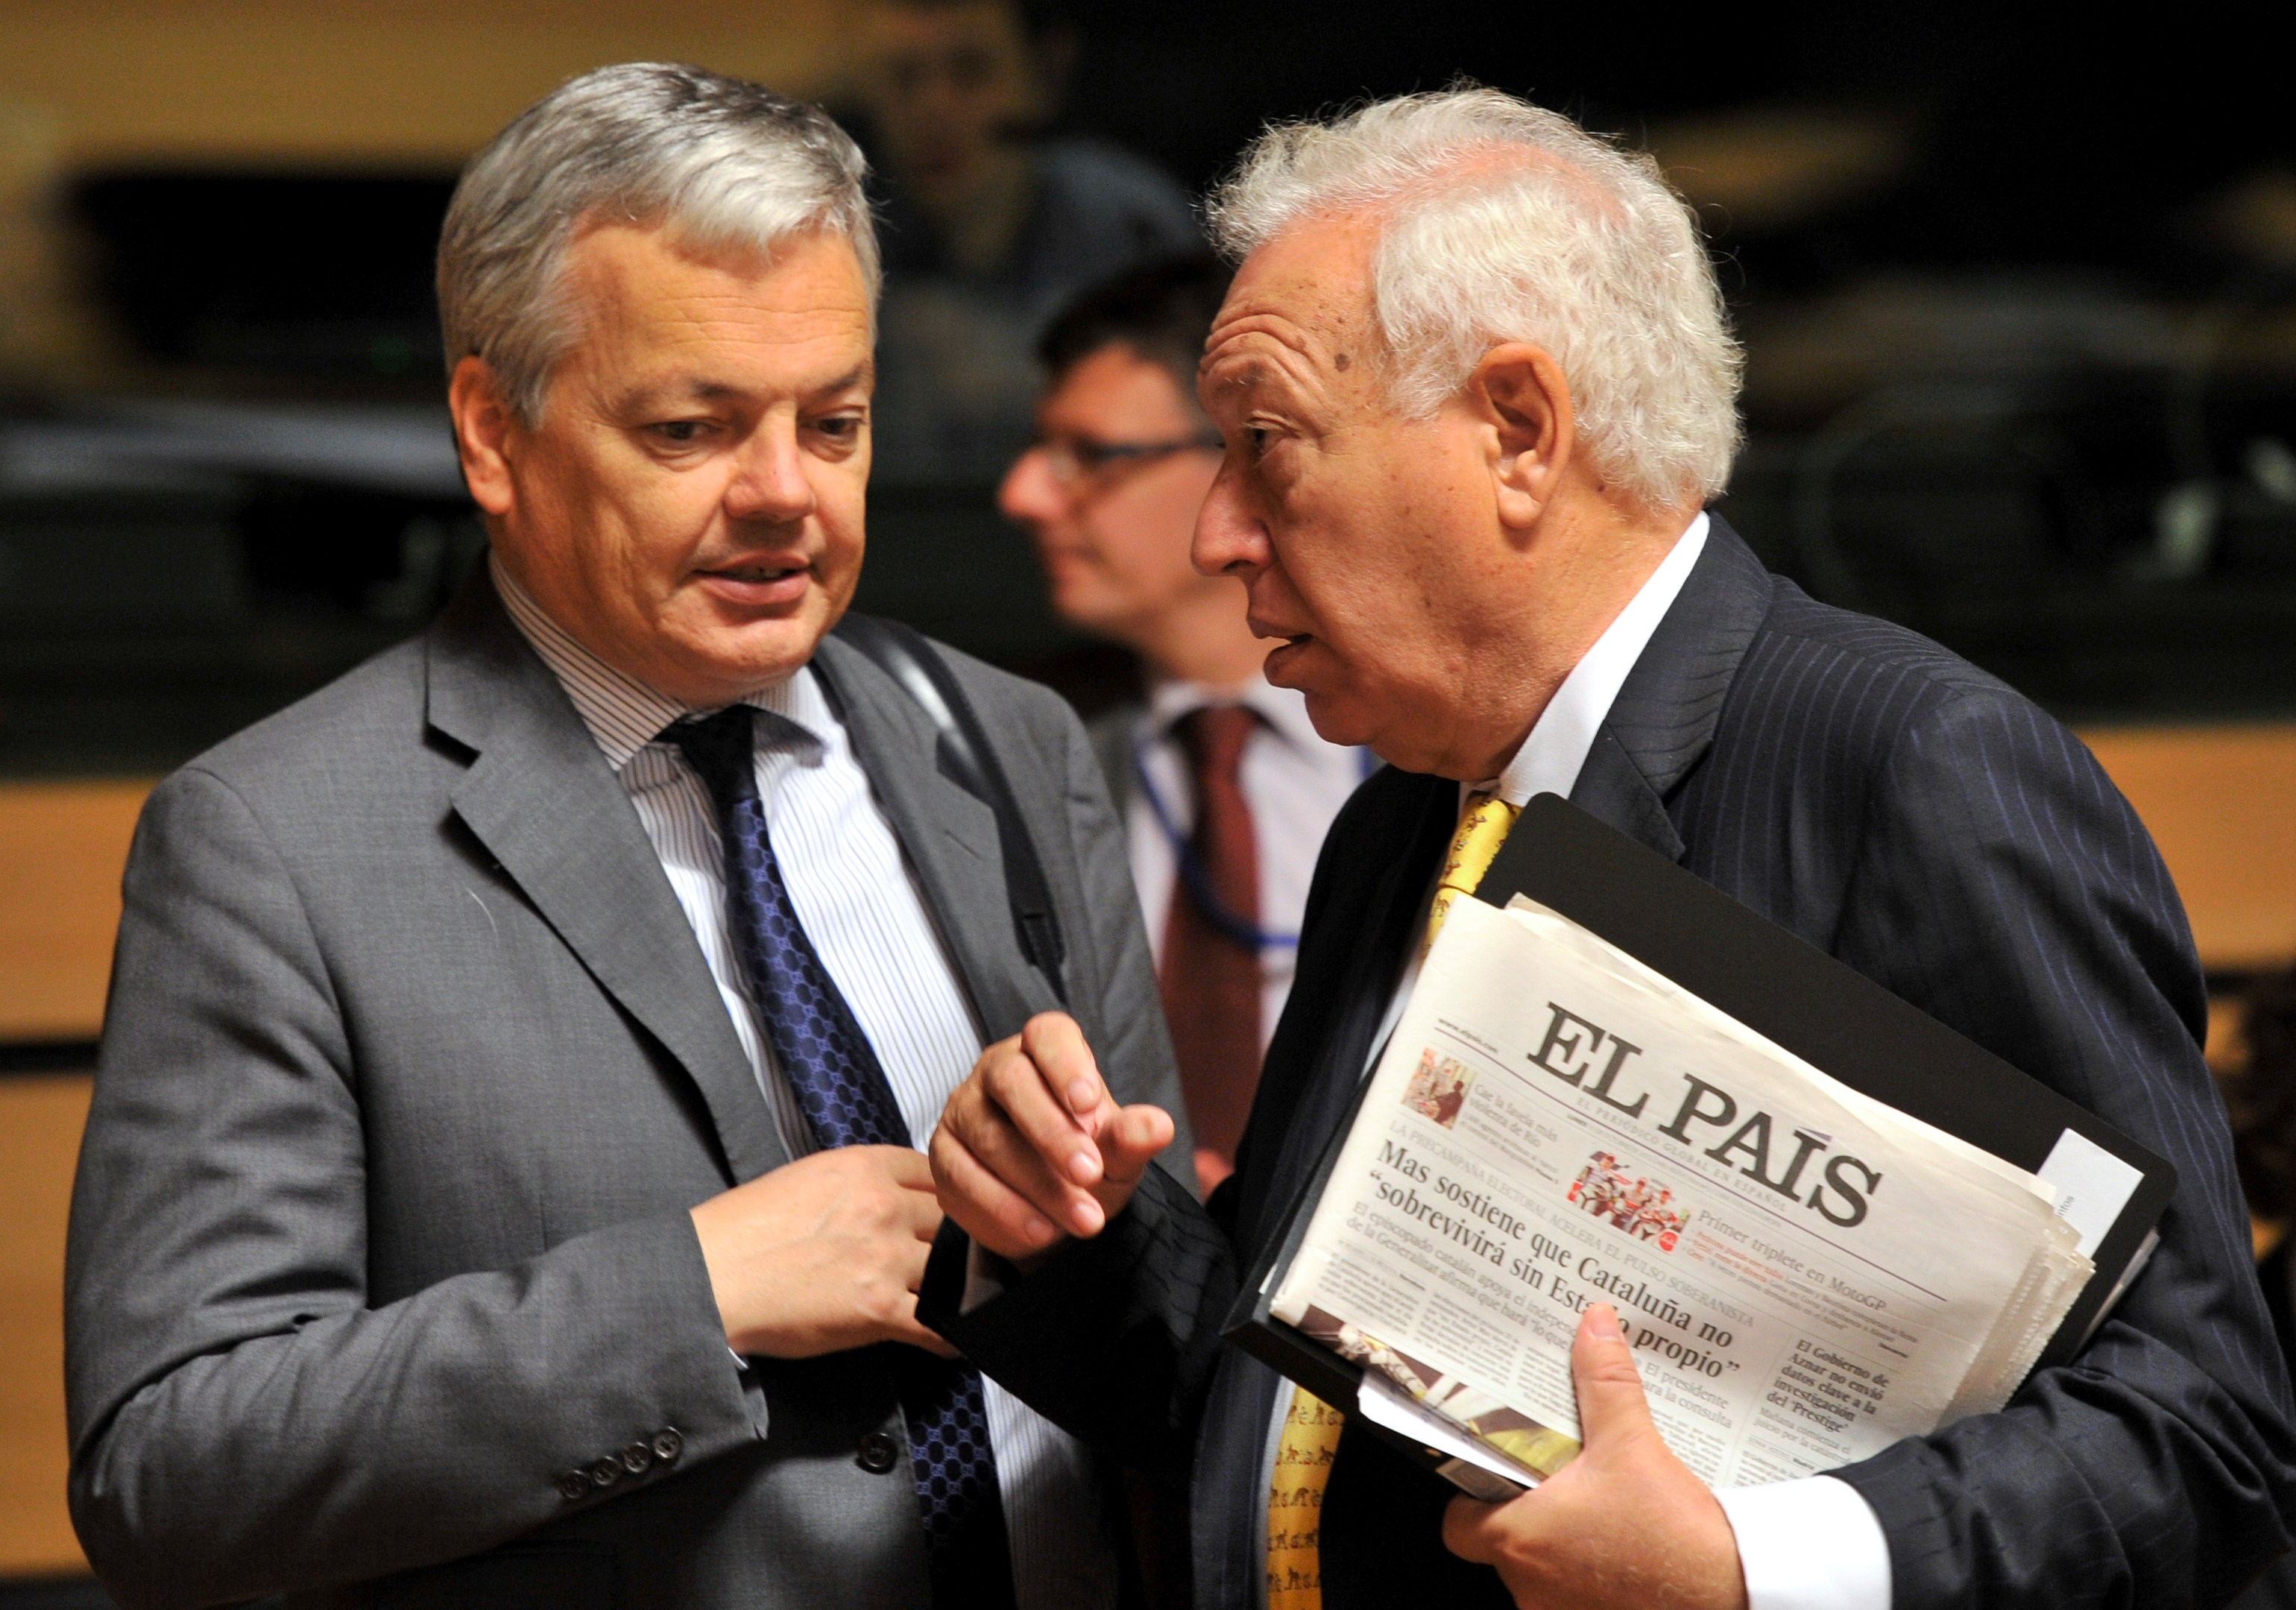 Spanish Foreign minister Jose Manuel Garcia Margallo (R) speaks with Belgian Foreign Minister Didier Reynders (L) before a Foreign Affairs ministers meeting on October 15, 2012 in Luxembourg. (AFP PHOTO / JOHN THYS)